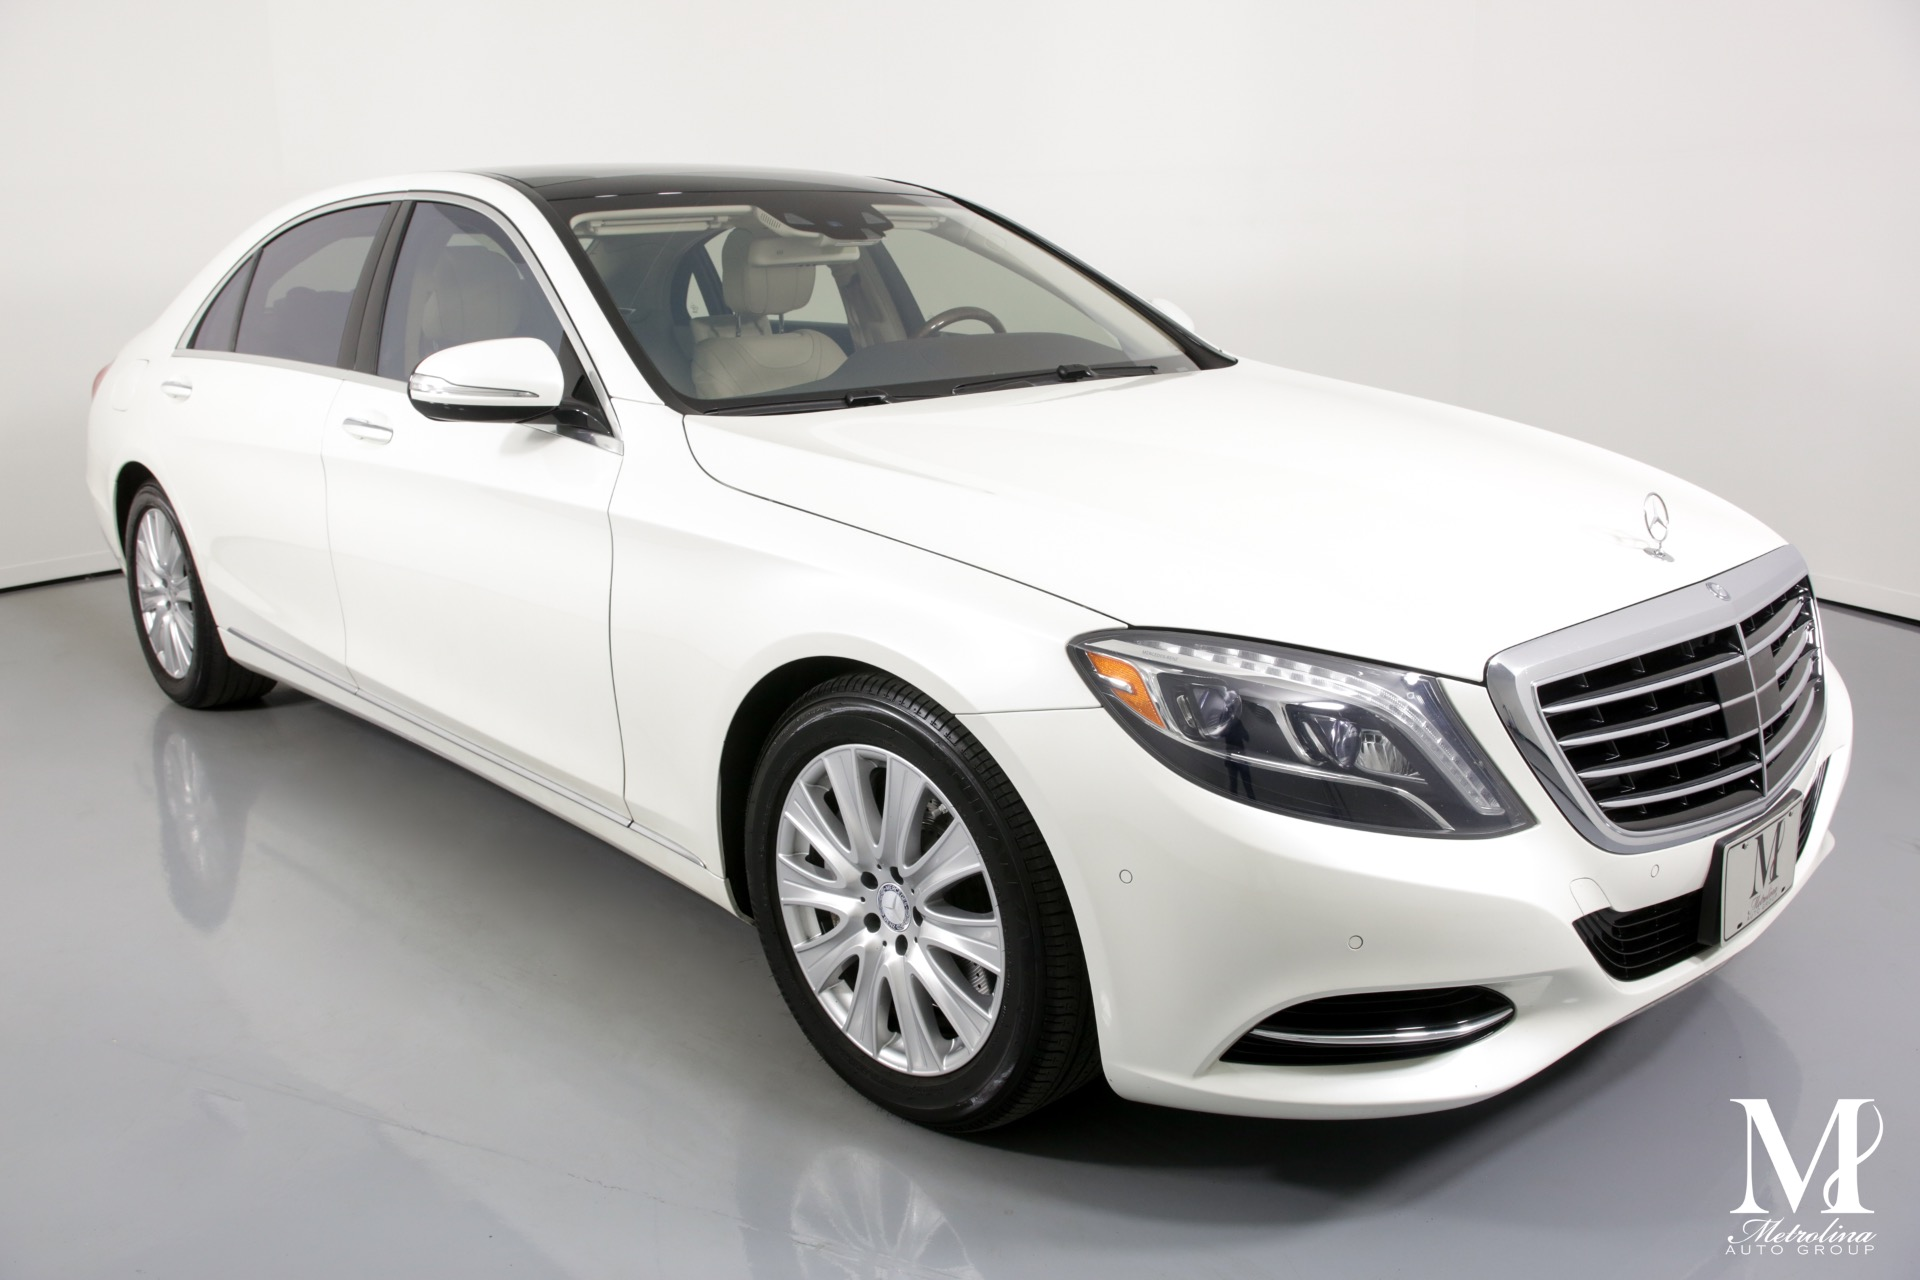 Used 2014 Mercedes-Benz S-Class S 550 4MATIC for sale $36,456 at Metrolina Auto Group in Charlotte NC 28217 - 2